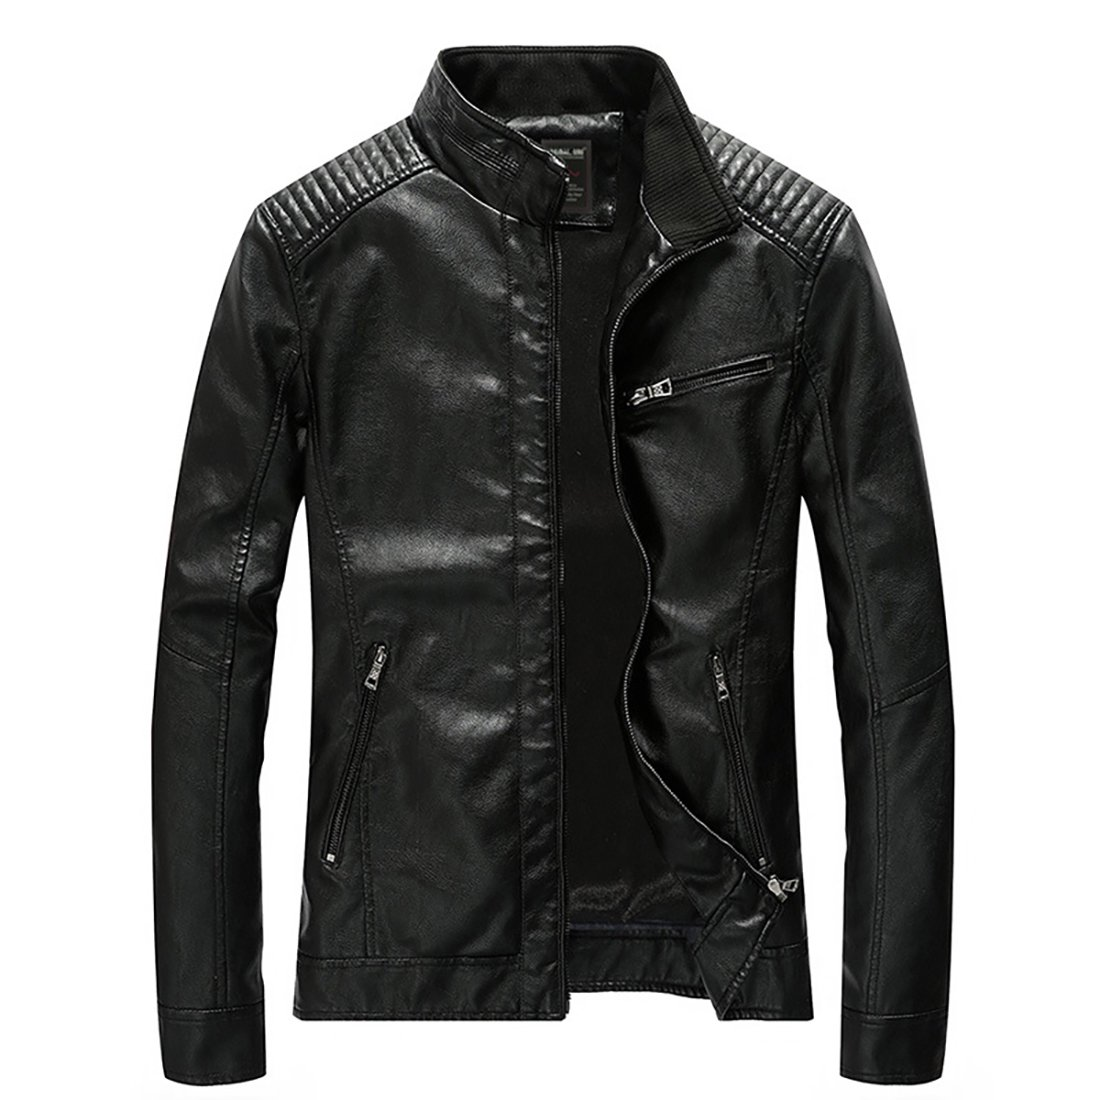 Nantersan Men's Leather Jacket Stand Collar Slim PU Mens Faux Fur Coats Motorcycle Jacket